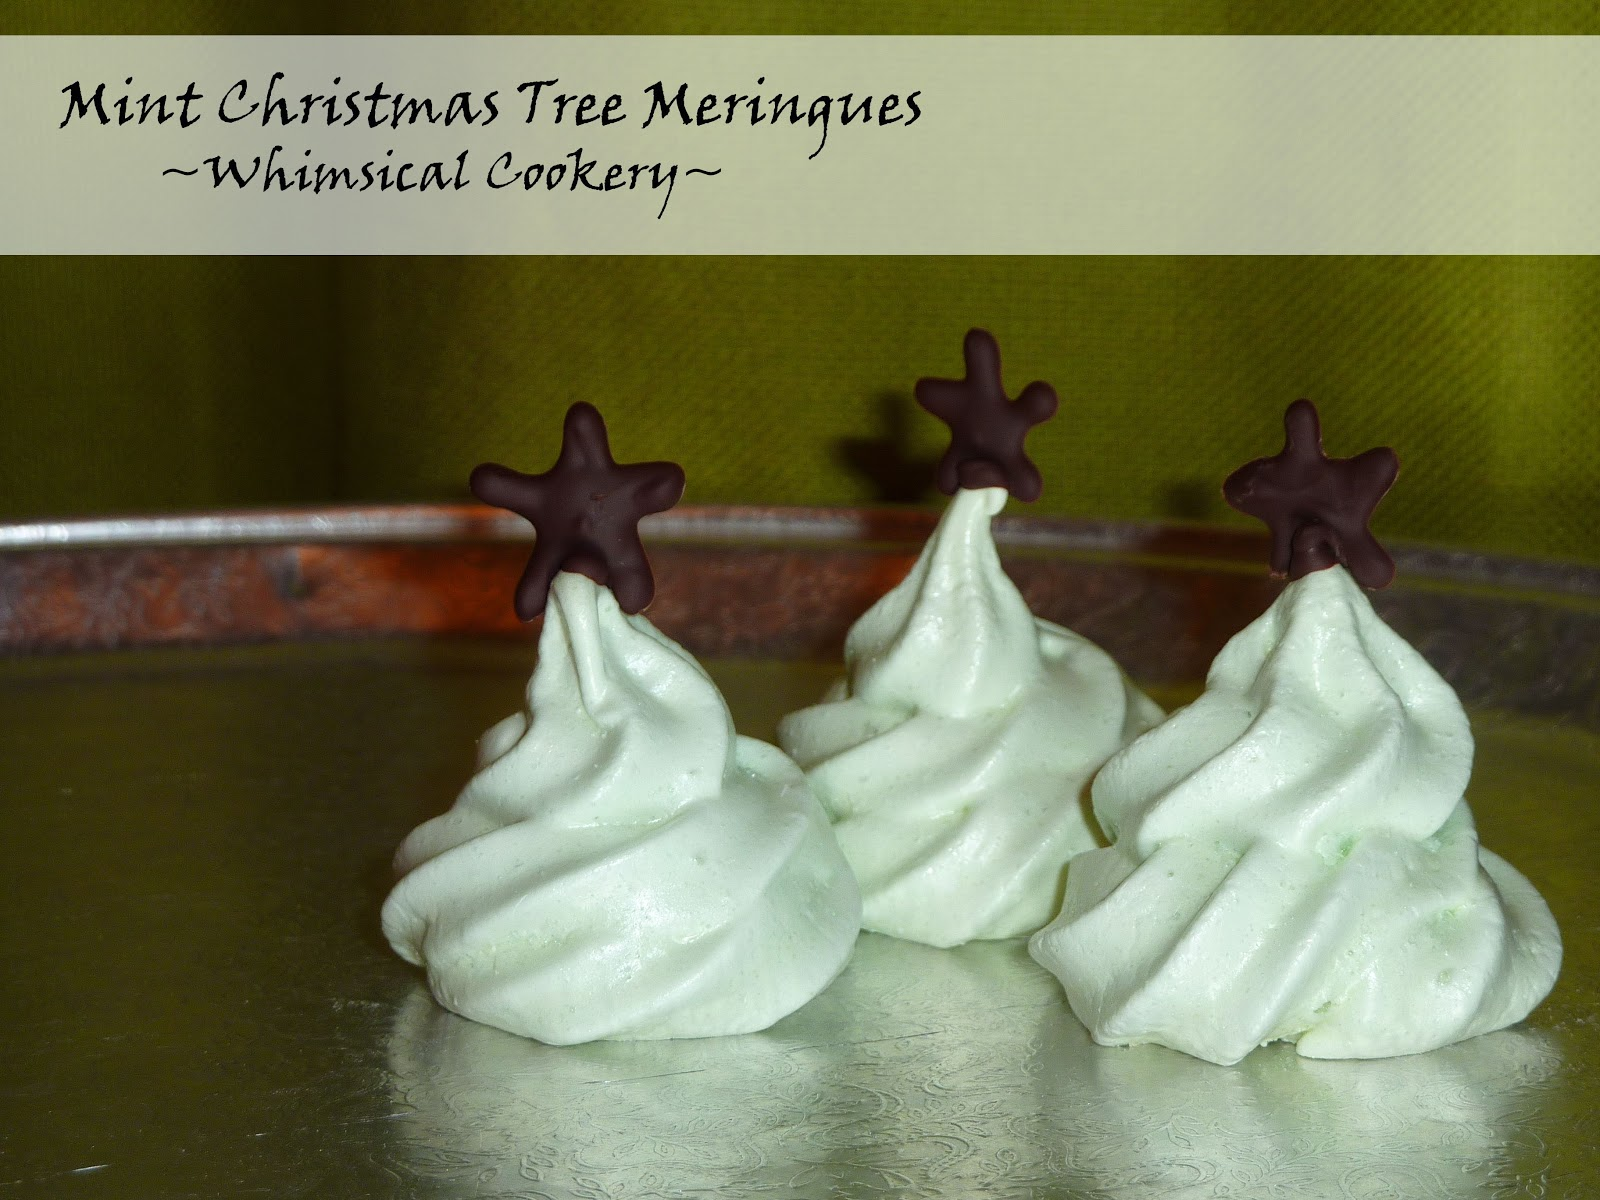 http://whimsicalcookery.blogspot.co.uk/2013/12/mint-christmas-tree-meringues.html